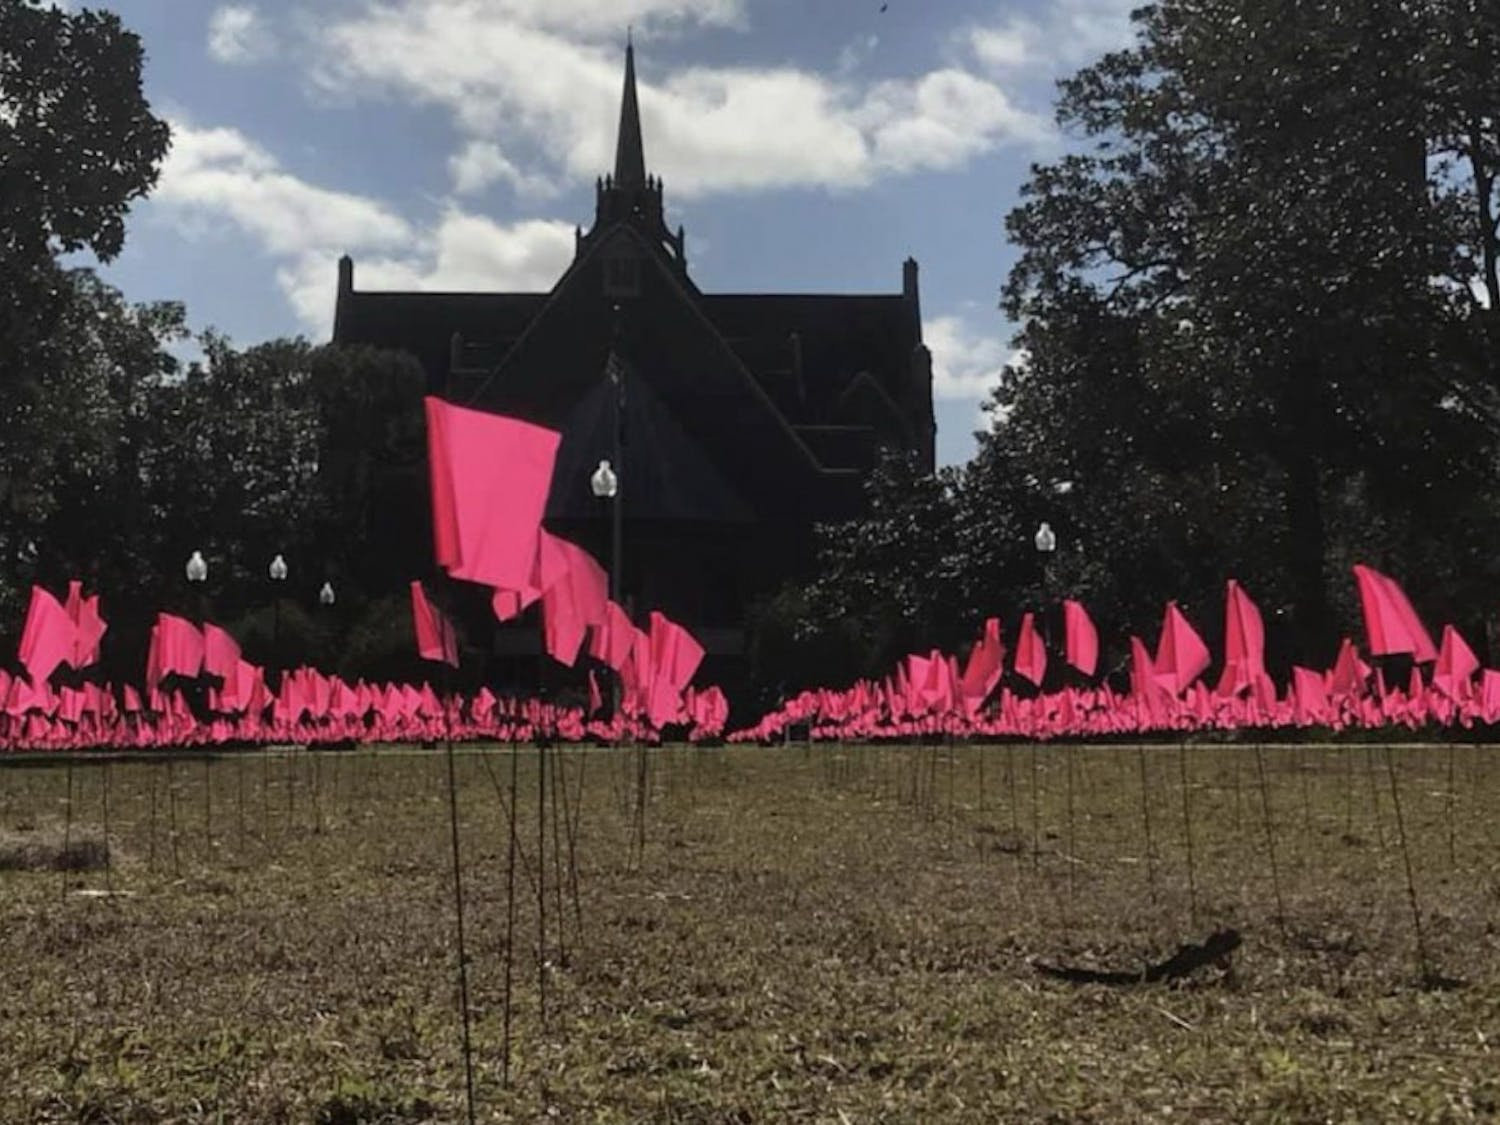 Exactly 2,537 flags were placed in Plaza of the Americas by UF Young Americans for Freedom chapter to represent the average number of abortions performed in the United States each day.